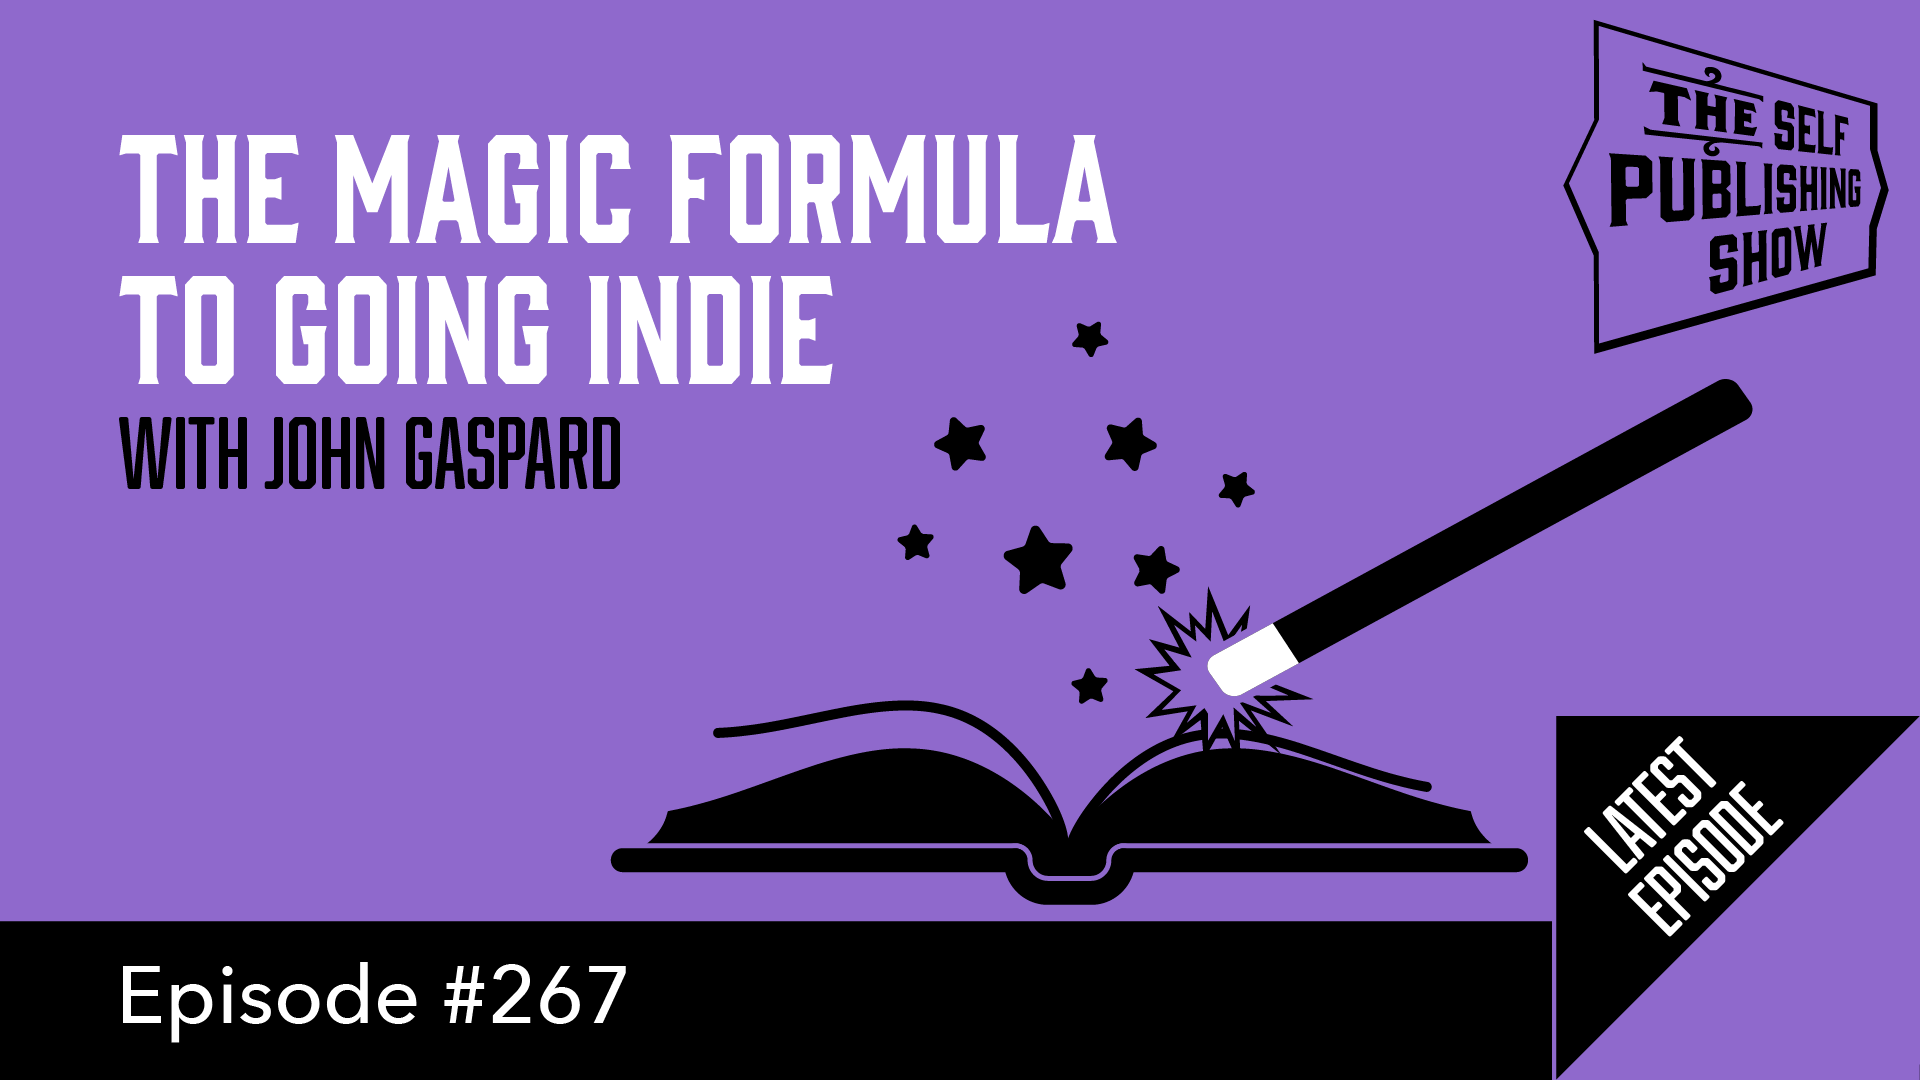 SPS-267: The Magic Formula to Going Indie – with John Gaspard